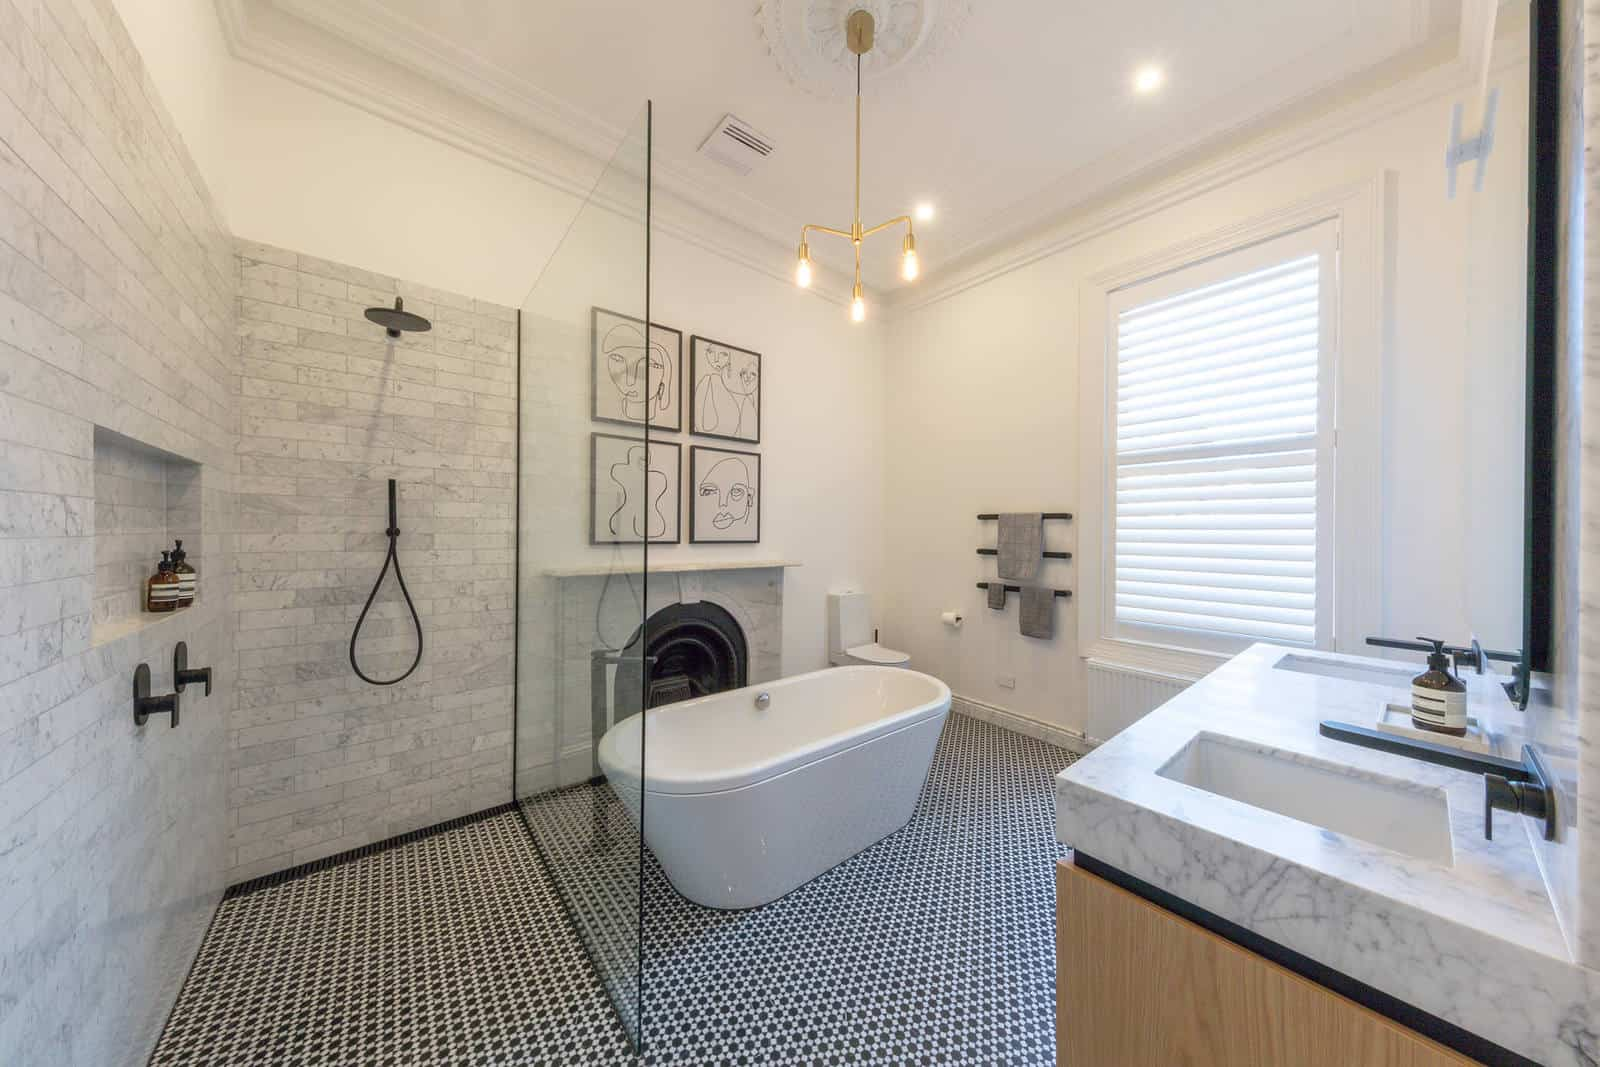 Bathroom Renovation: Get the Best Bathroom of Your Dreams